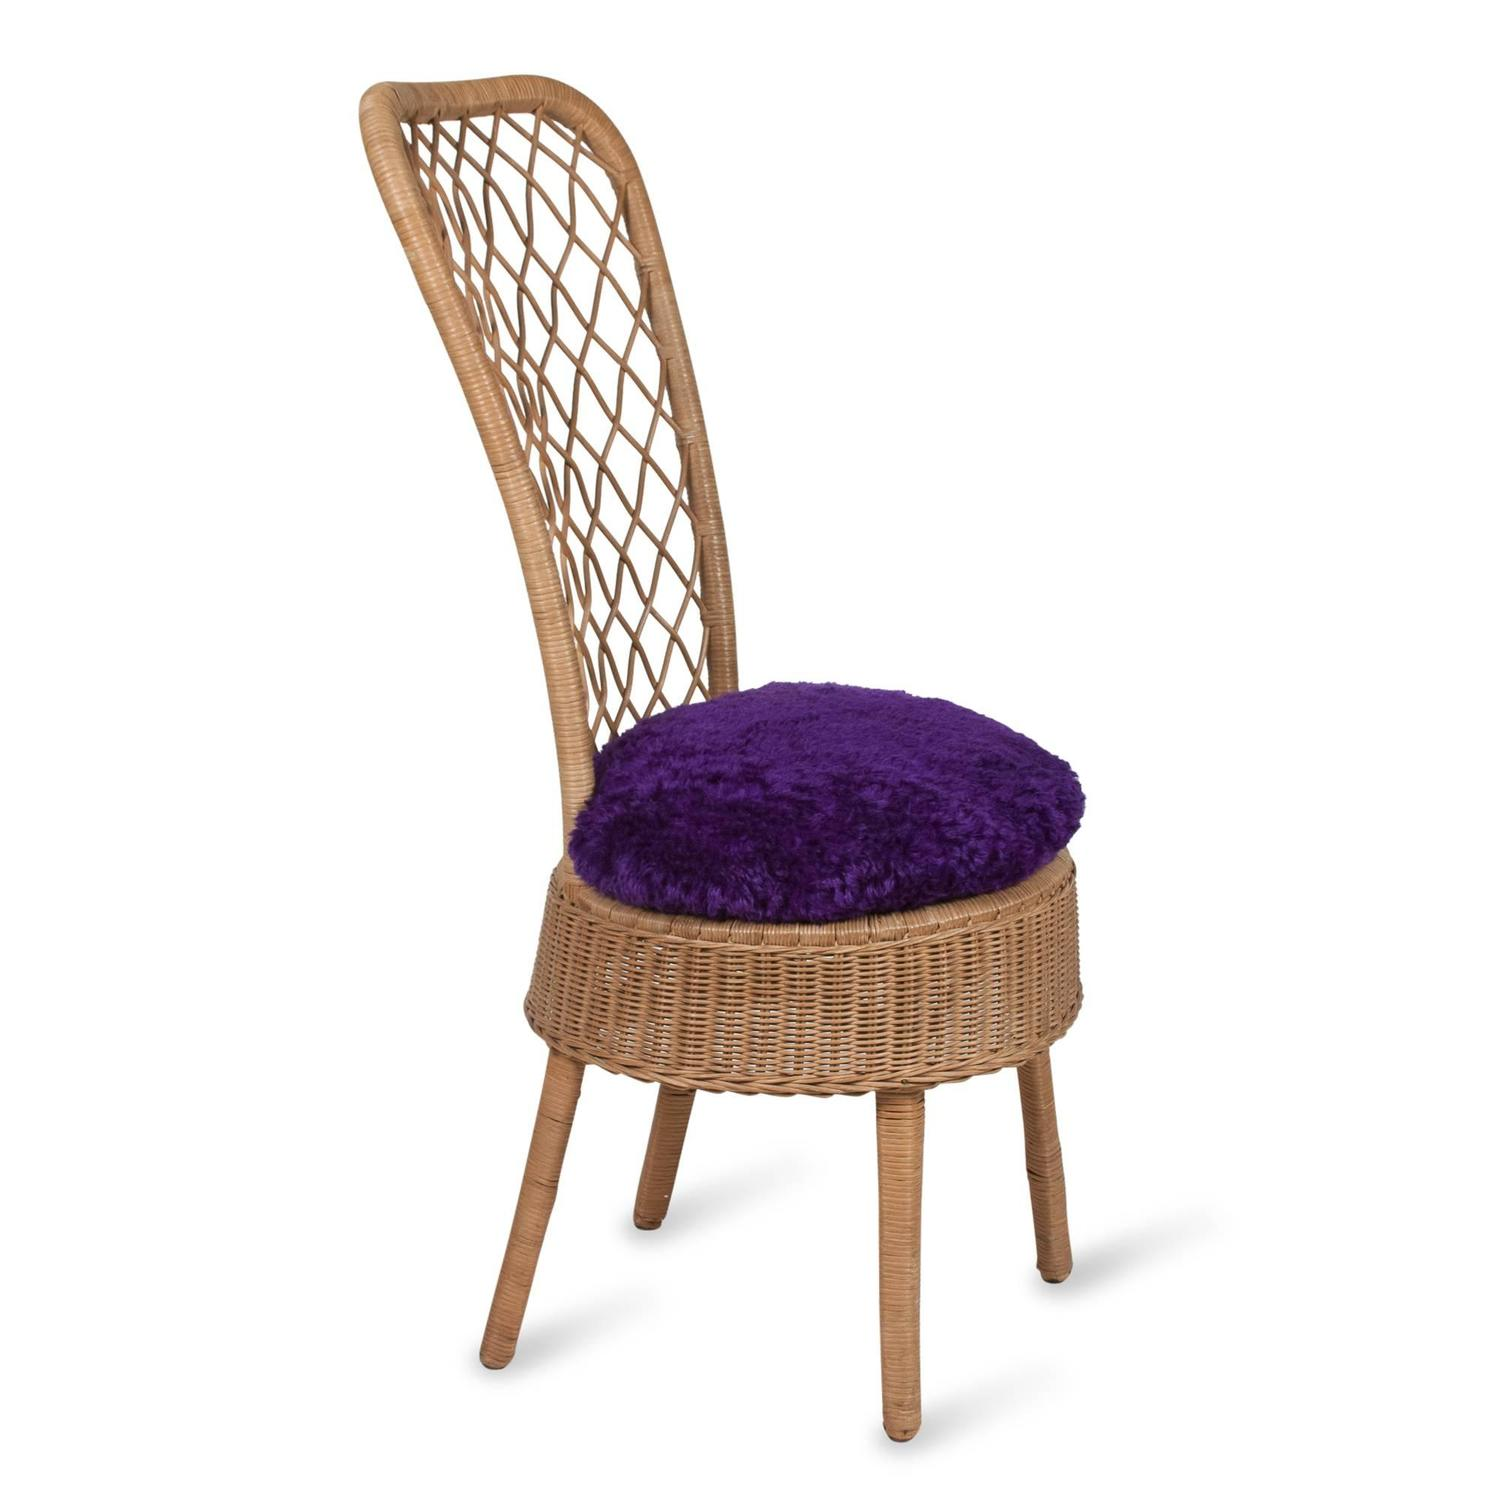 high back wicker chair cushions luna events covers rattan by jean royère for sale at 1stdibs